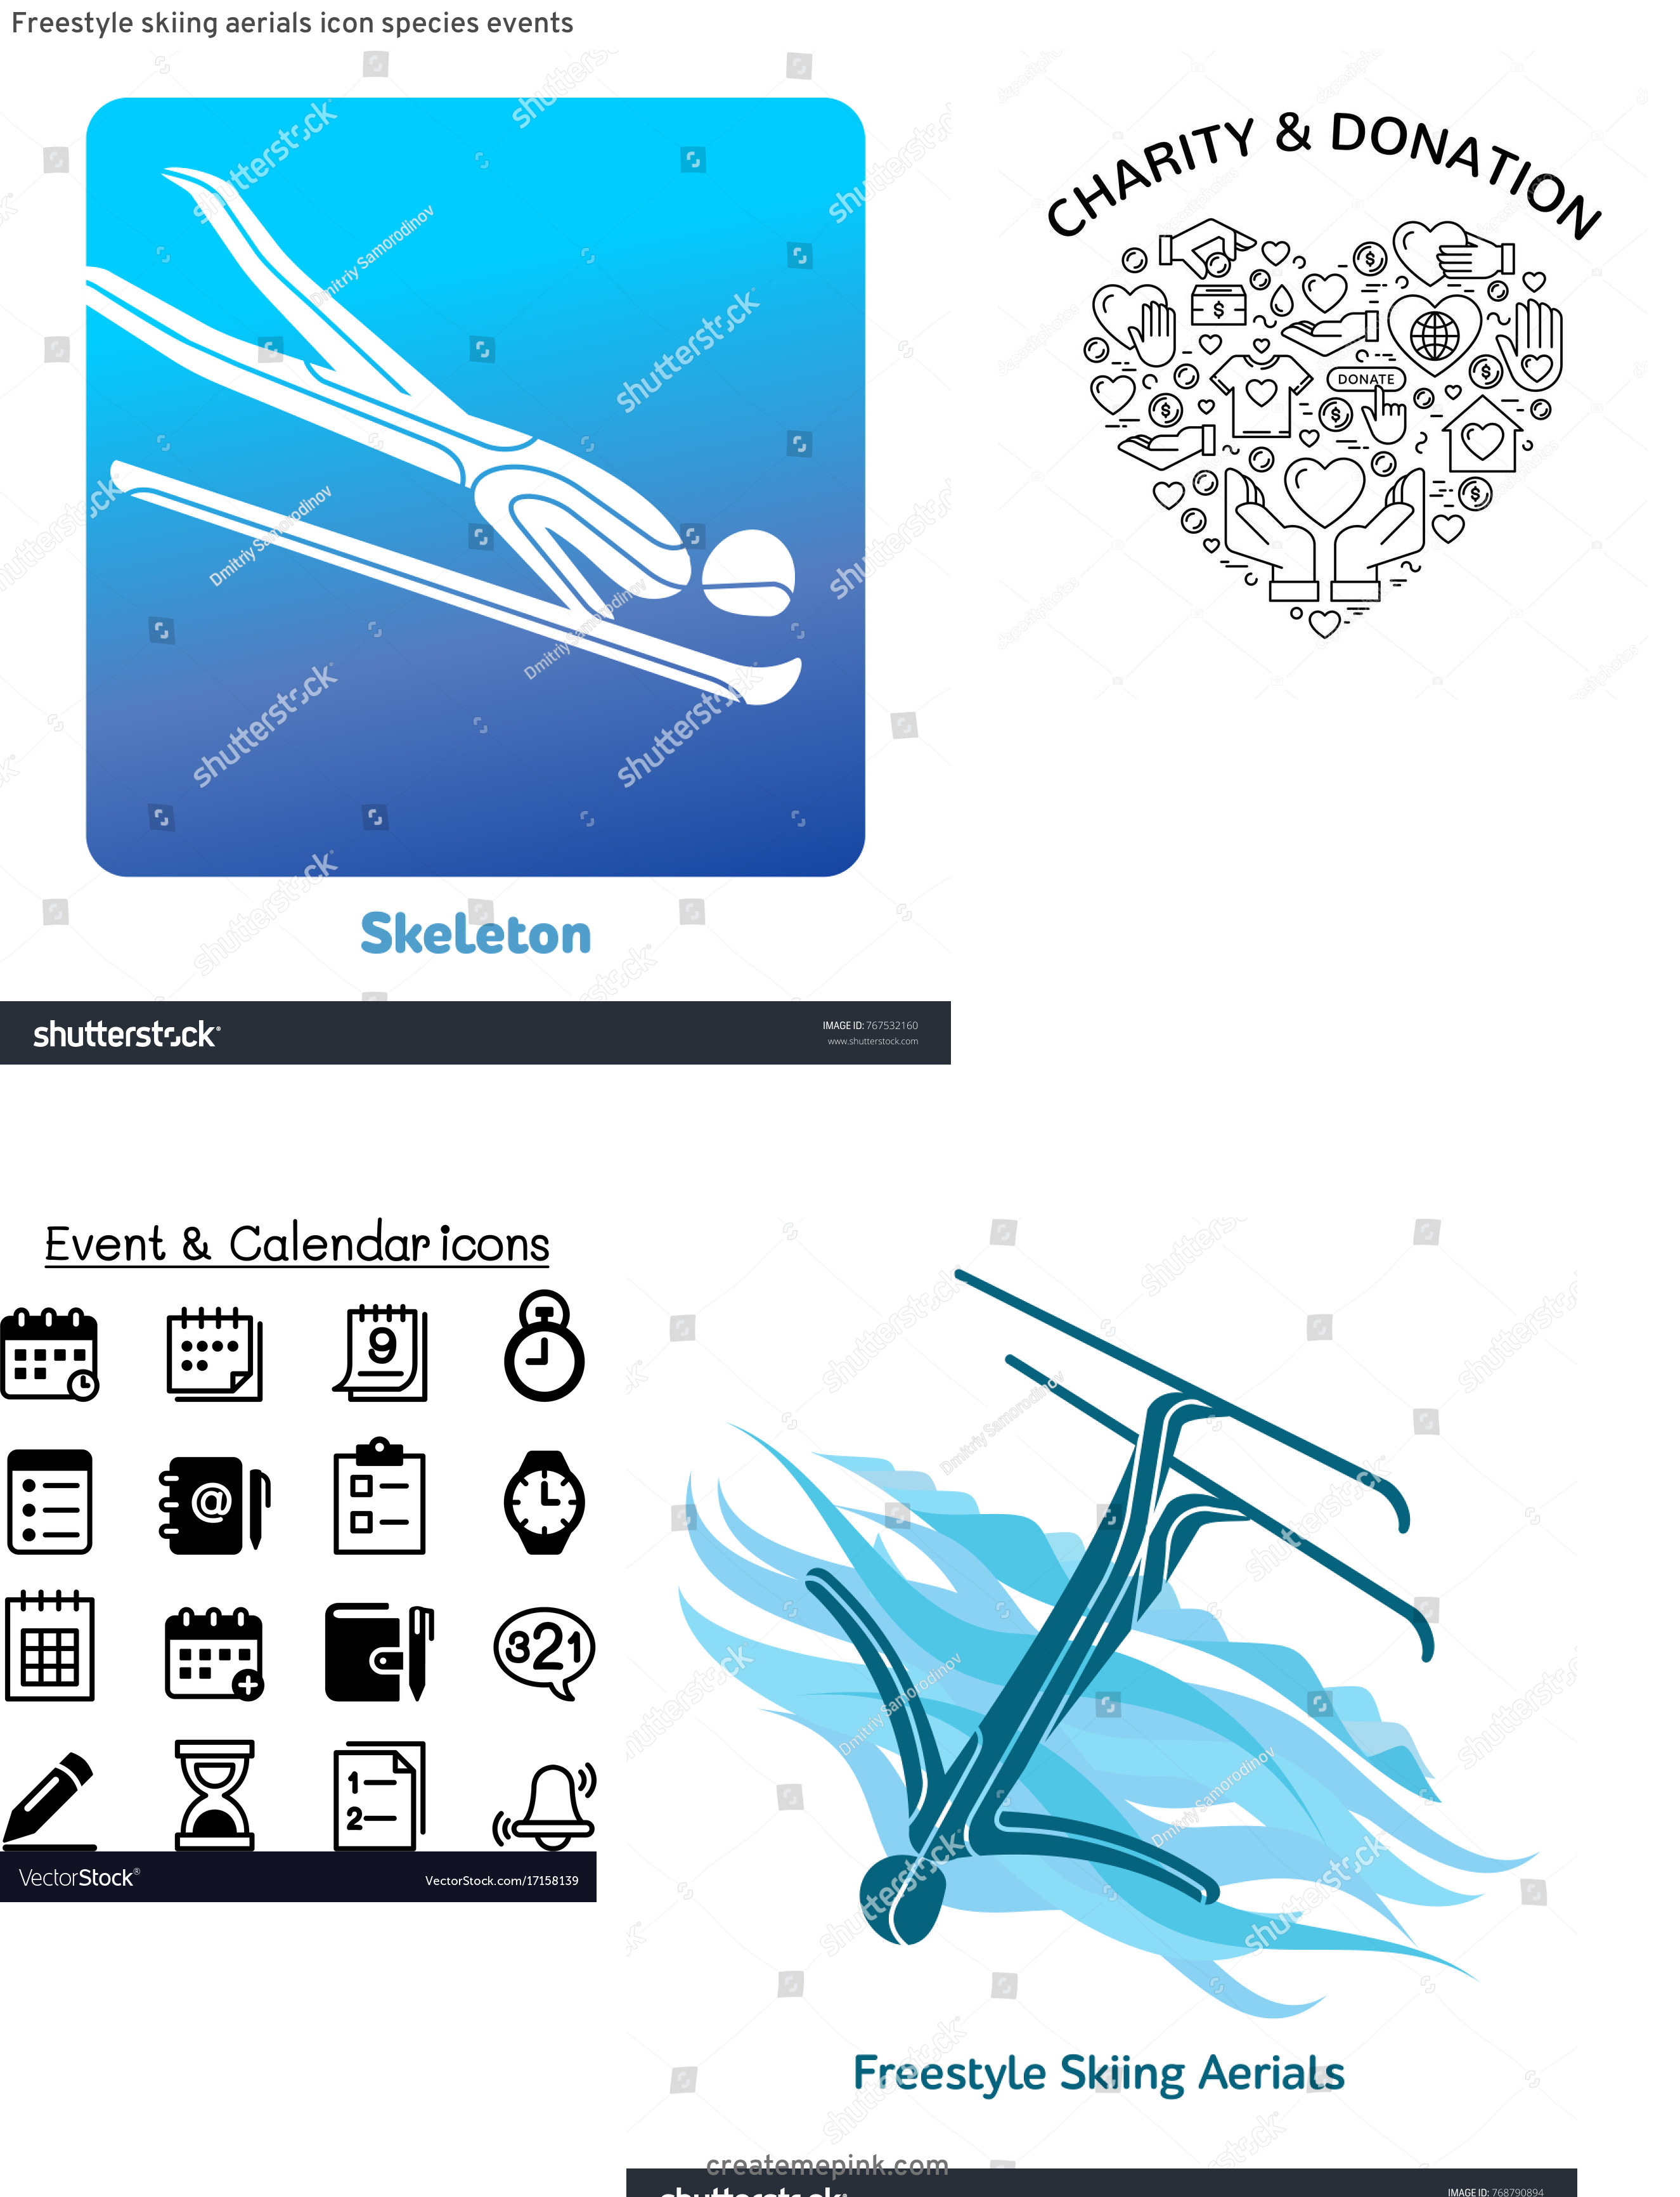 Vector Pictograms Events: Freestyle Skiing Aerials Icon Species Events